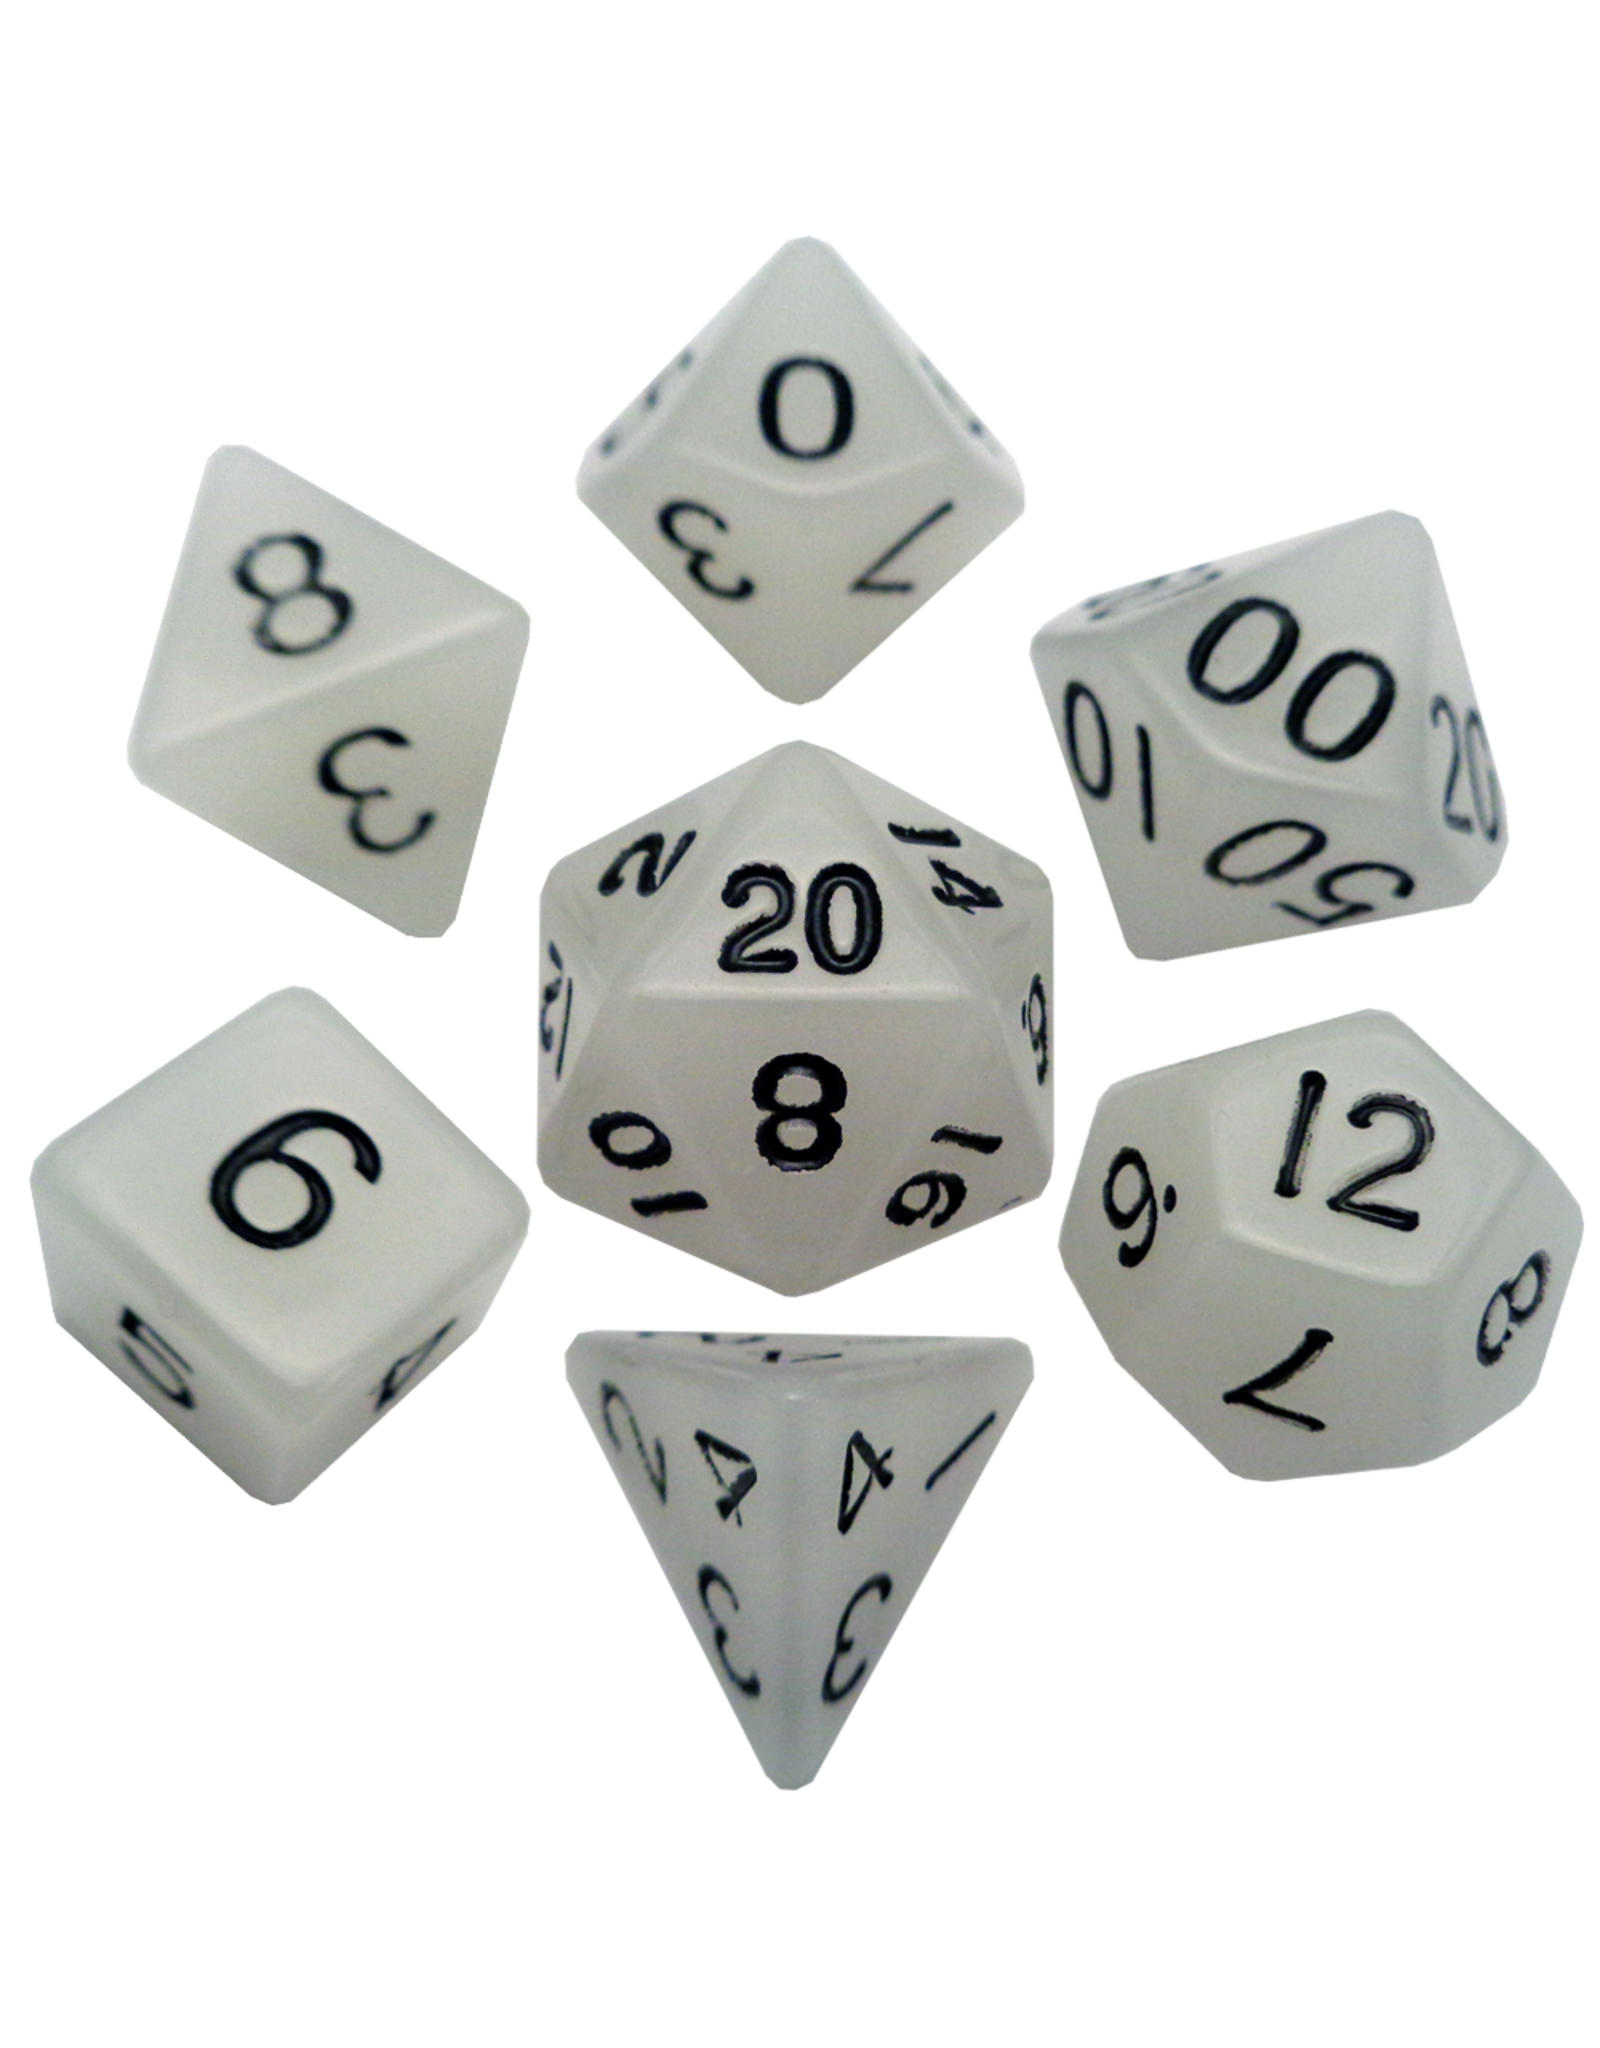 Metallic Dice Games 16mm Polyhedral Dice Set Glow Clear